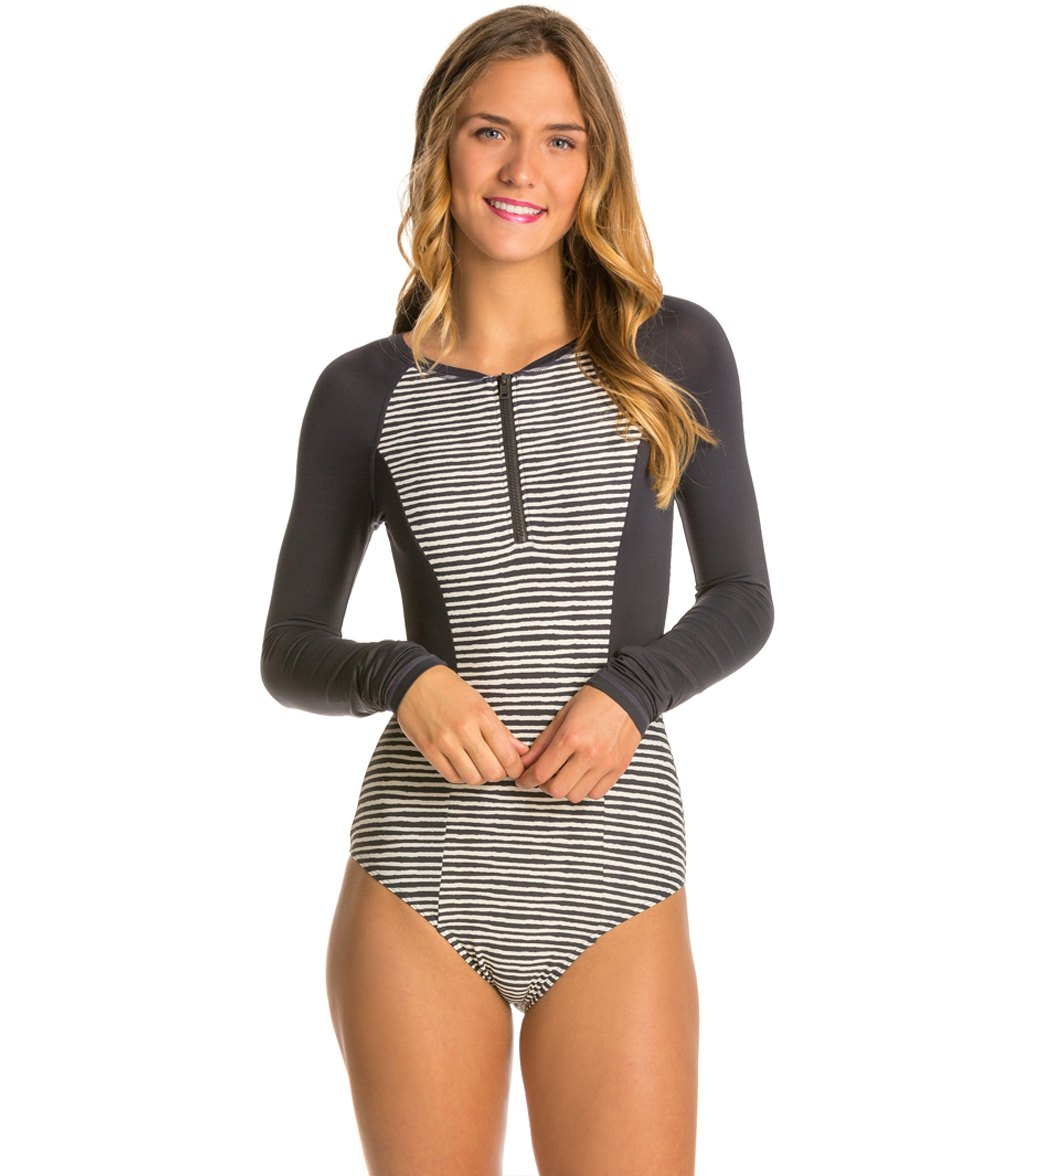 f3156690ac Billabong GI Geo LS Rashguard One Piece Swimsuit at SwimOutlet.com - Free  Shipping